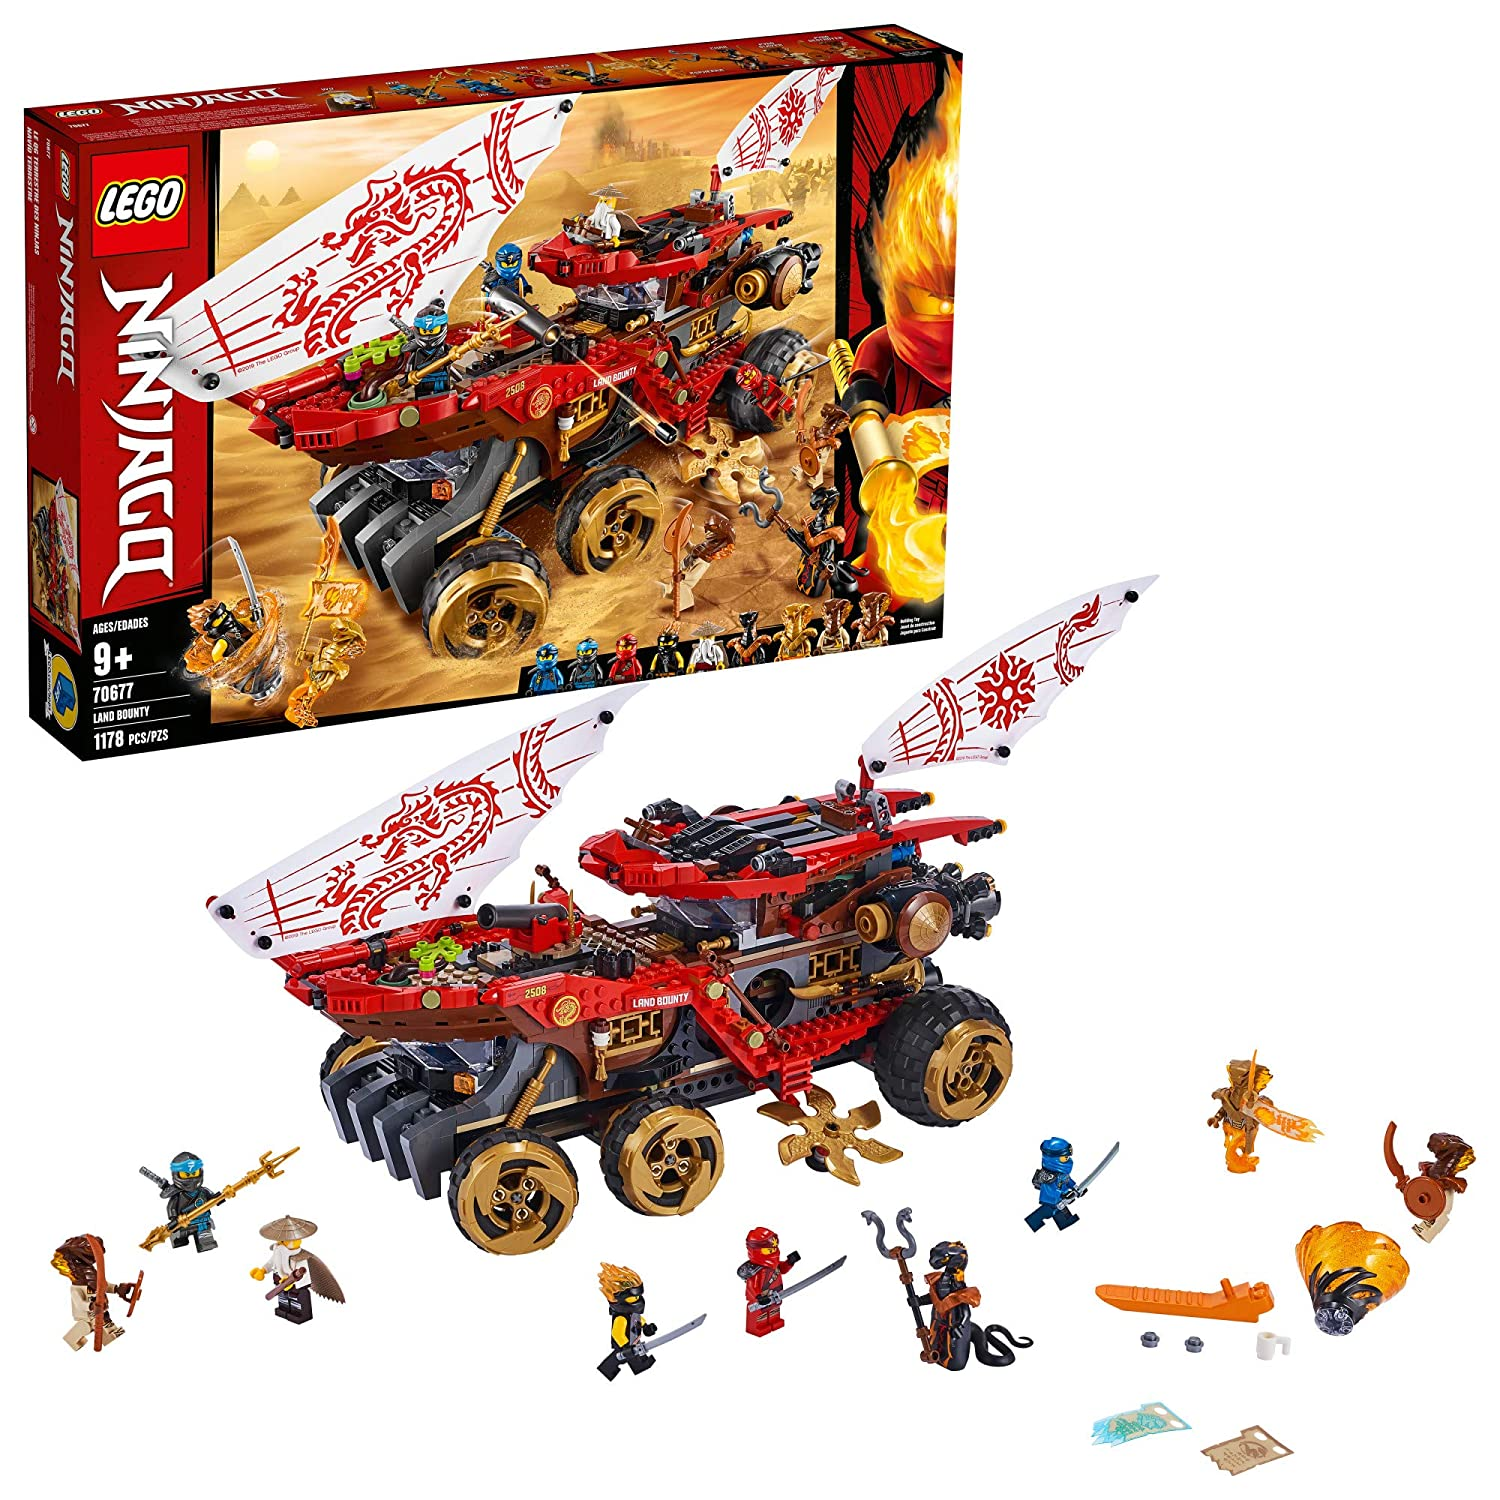 LEGO NINJAGO Land Bounty 70677 Toy Truck Building Set with Ninja Minifigures, Popular Action Toy with Two Toy Vehicles and Toy Ninja Weapons for Creative Play(1,178 Pieces)